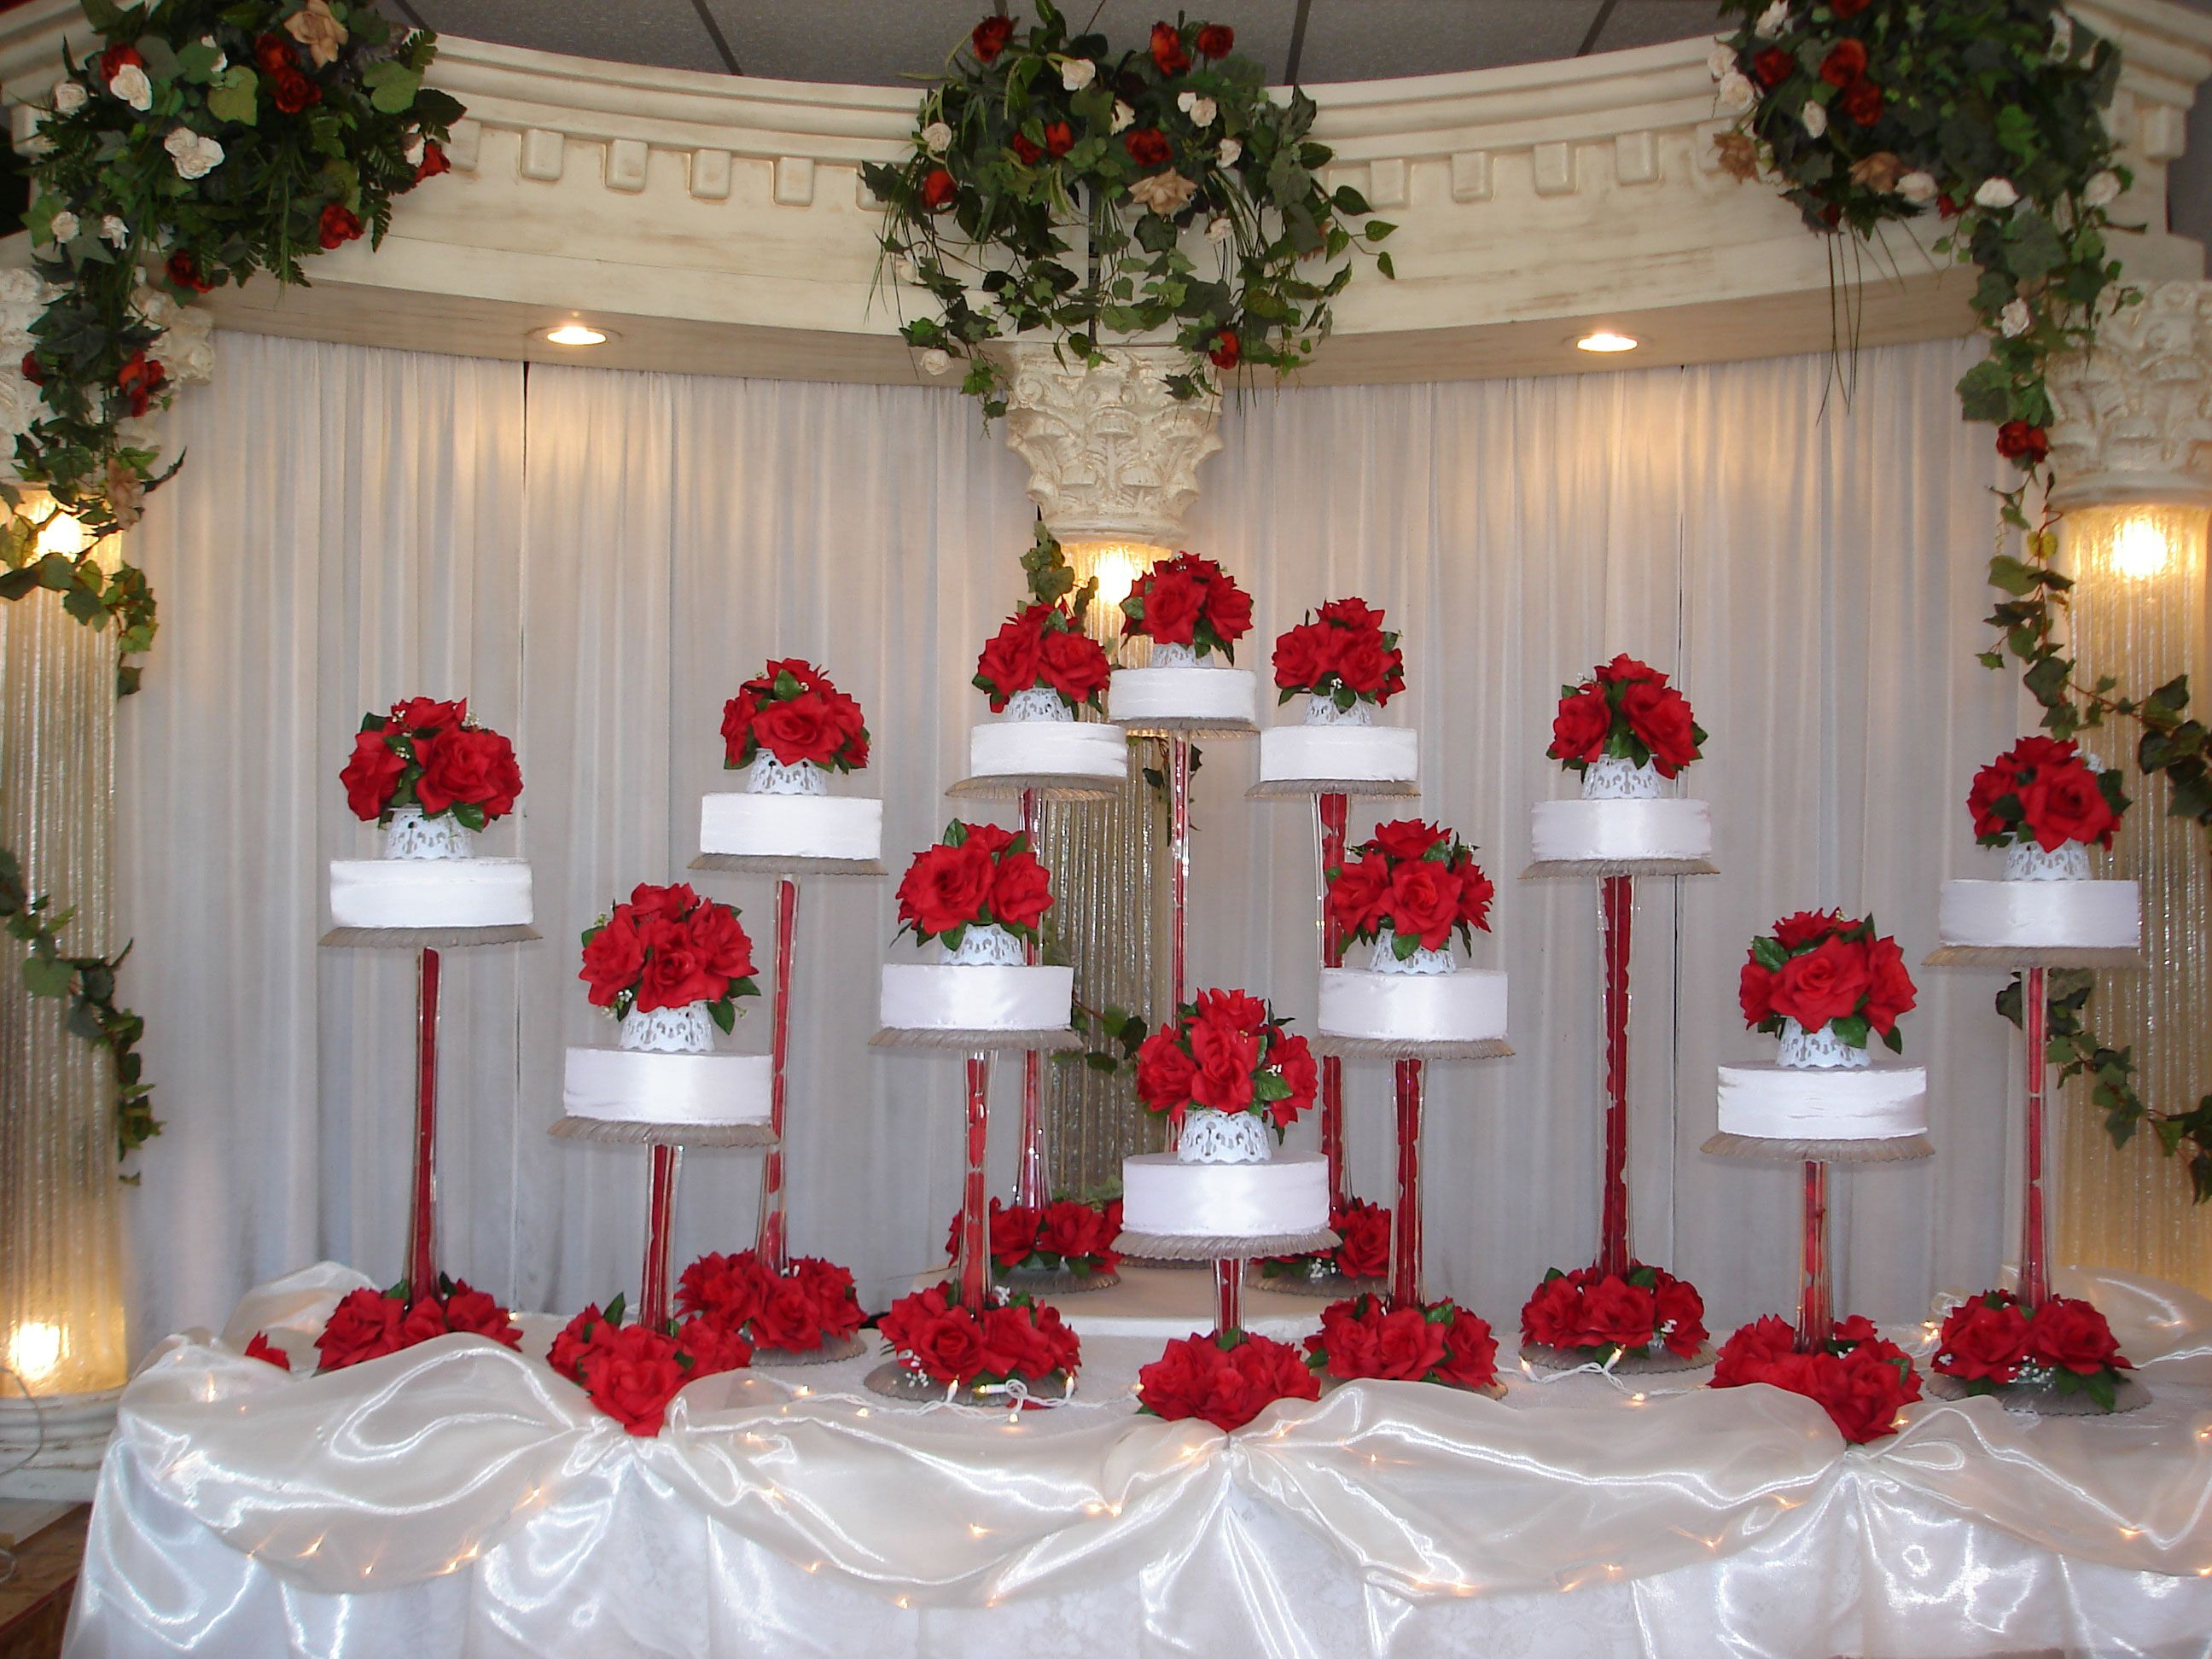 Decoraciones Gramar Salon Decoraciones Decoraciones Bodas Pictures The